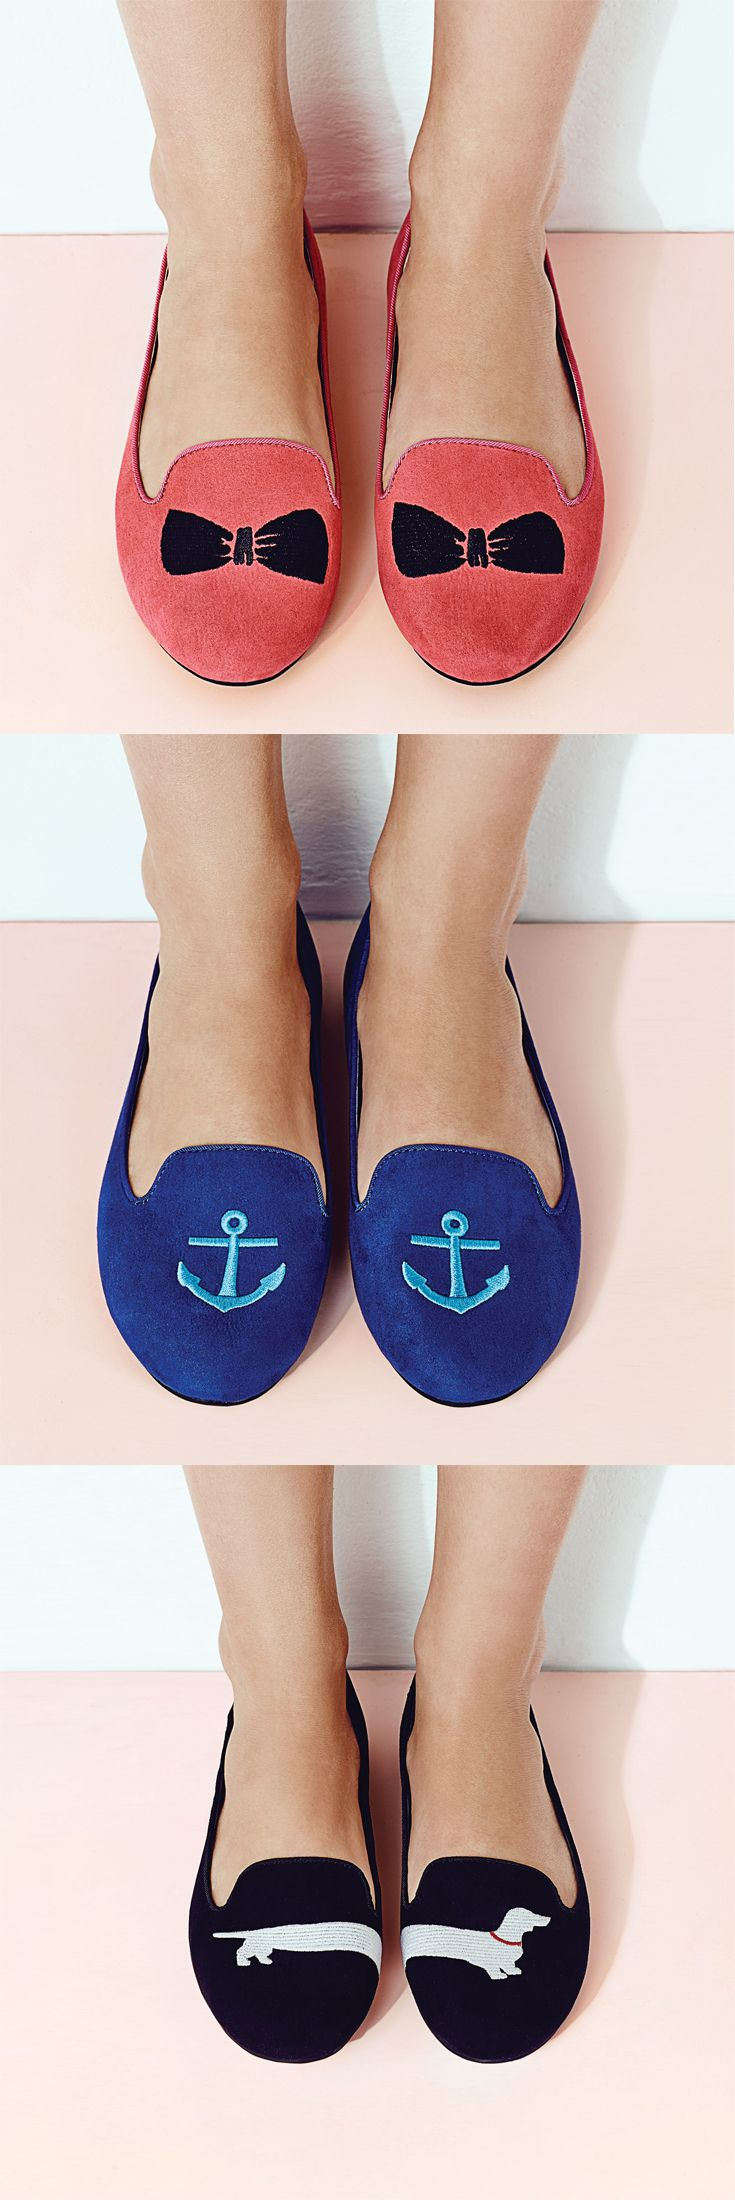 Add some springtime character to your shoes with a fun bow or anchor print